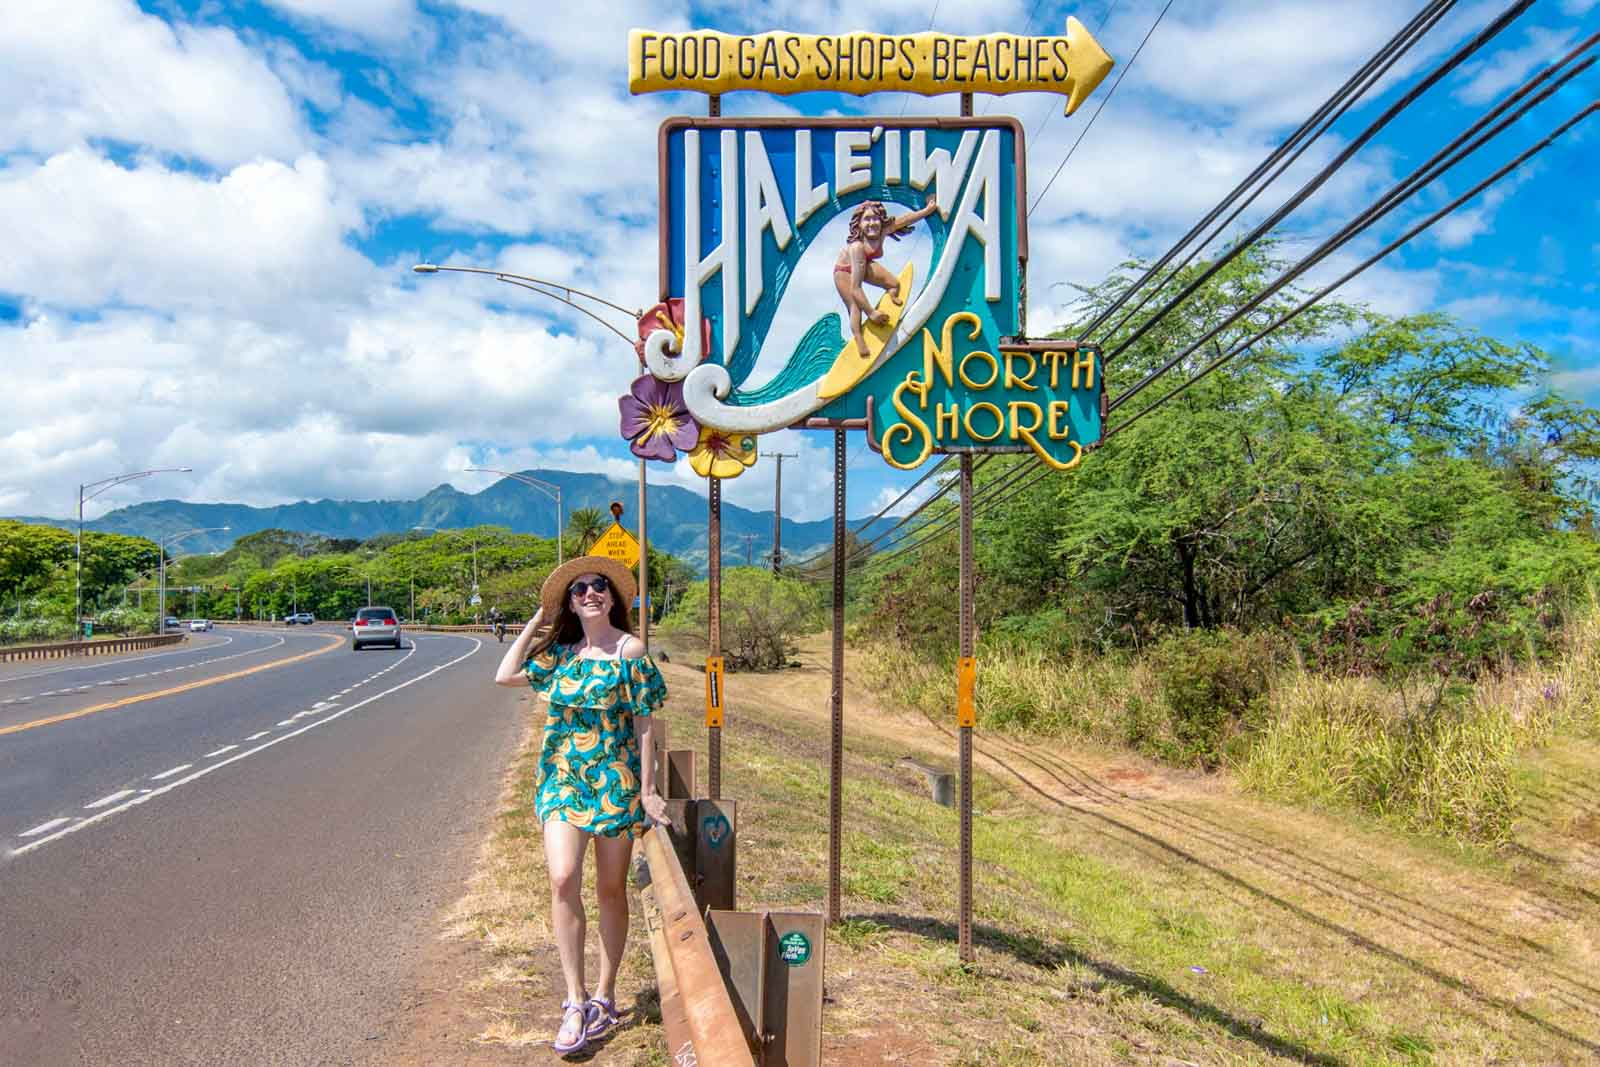 Woman posing next to the Haleiwa surfer sign in Haleiwa, North Shore, Oahu